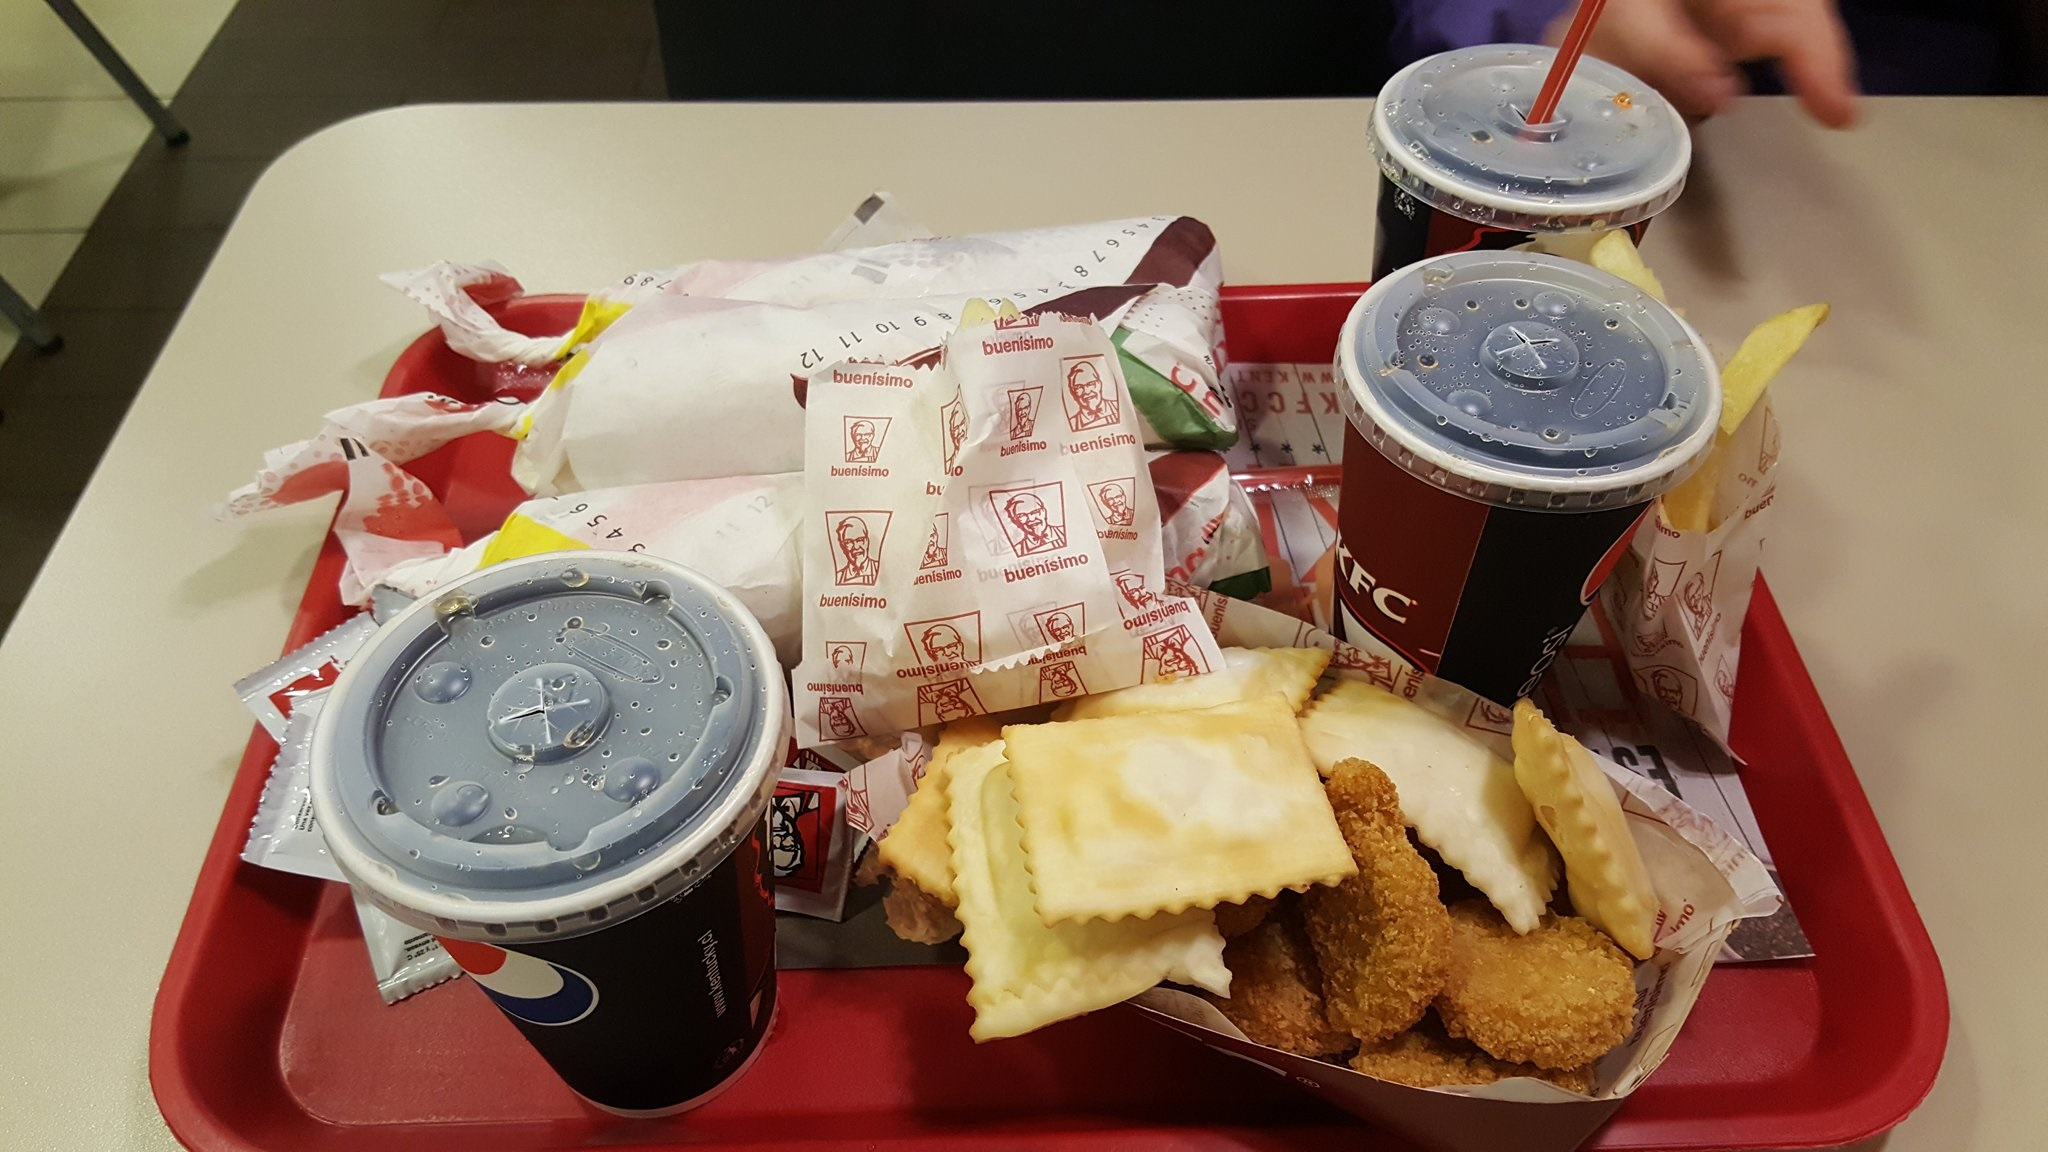 Eating KFC in South America